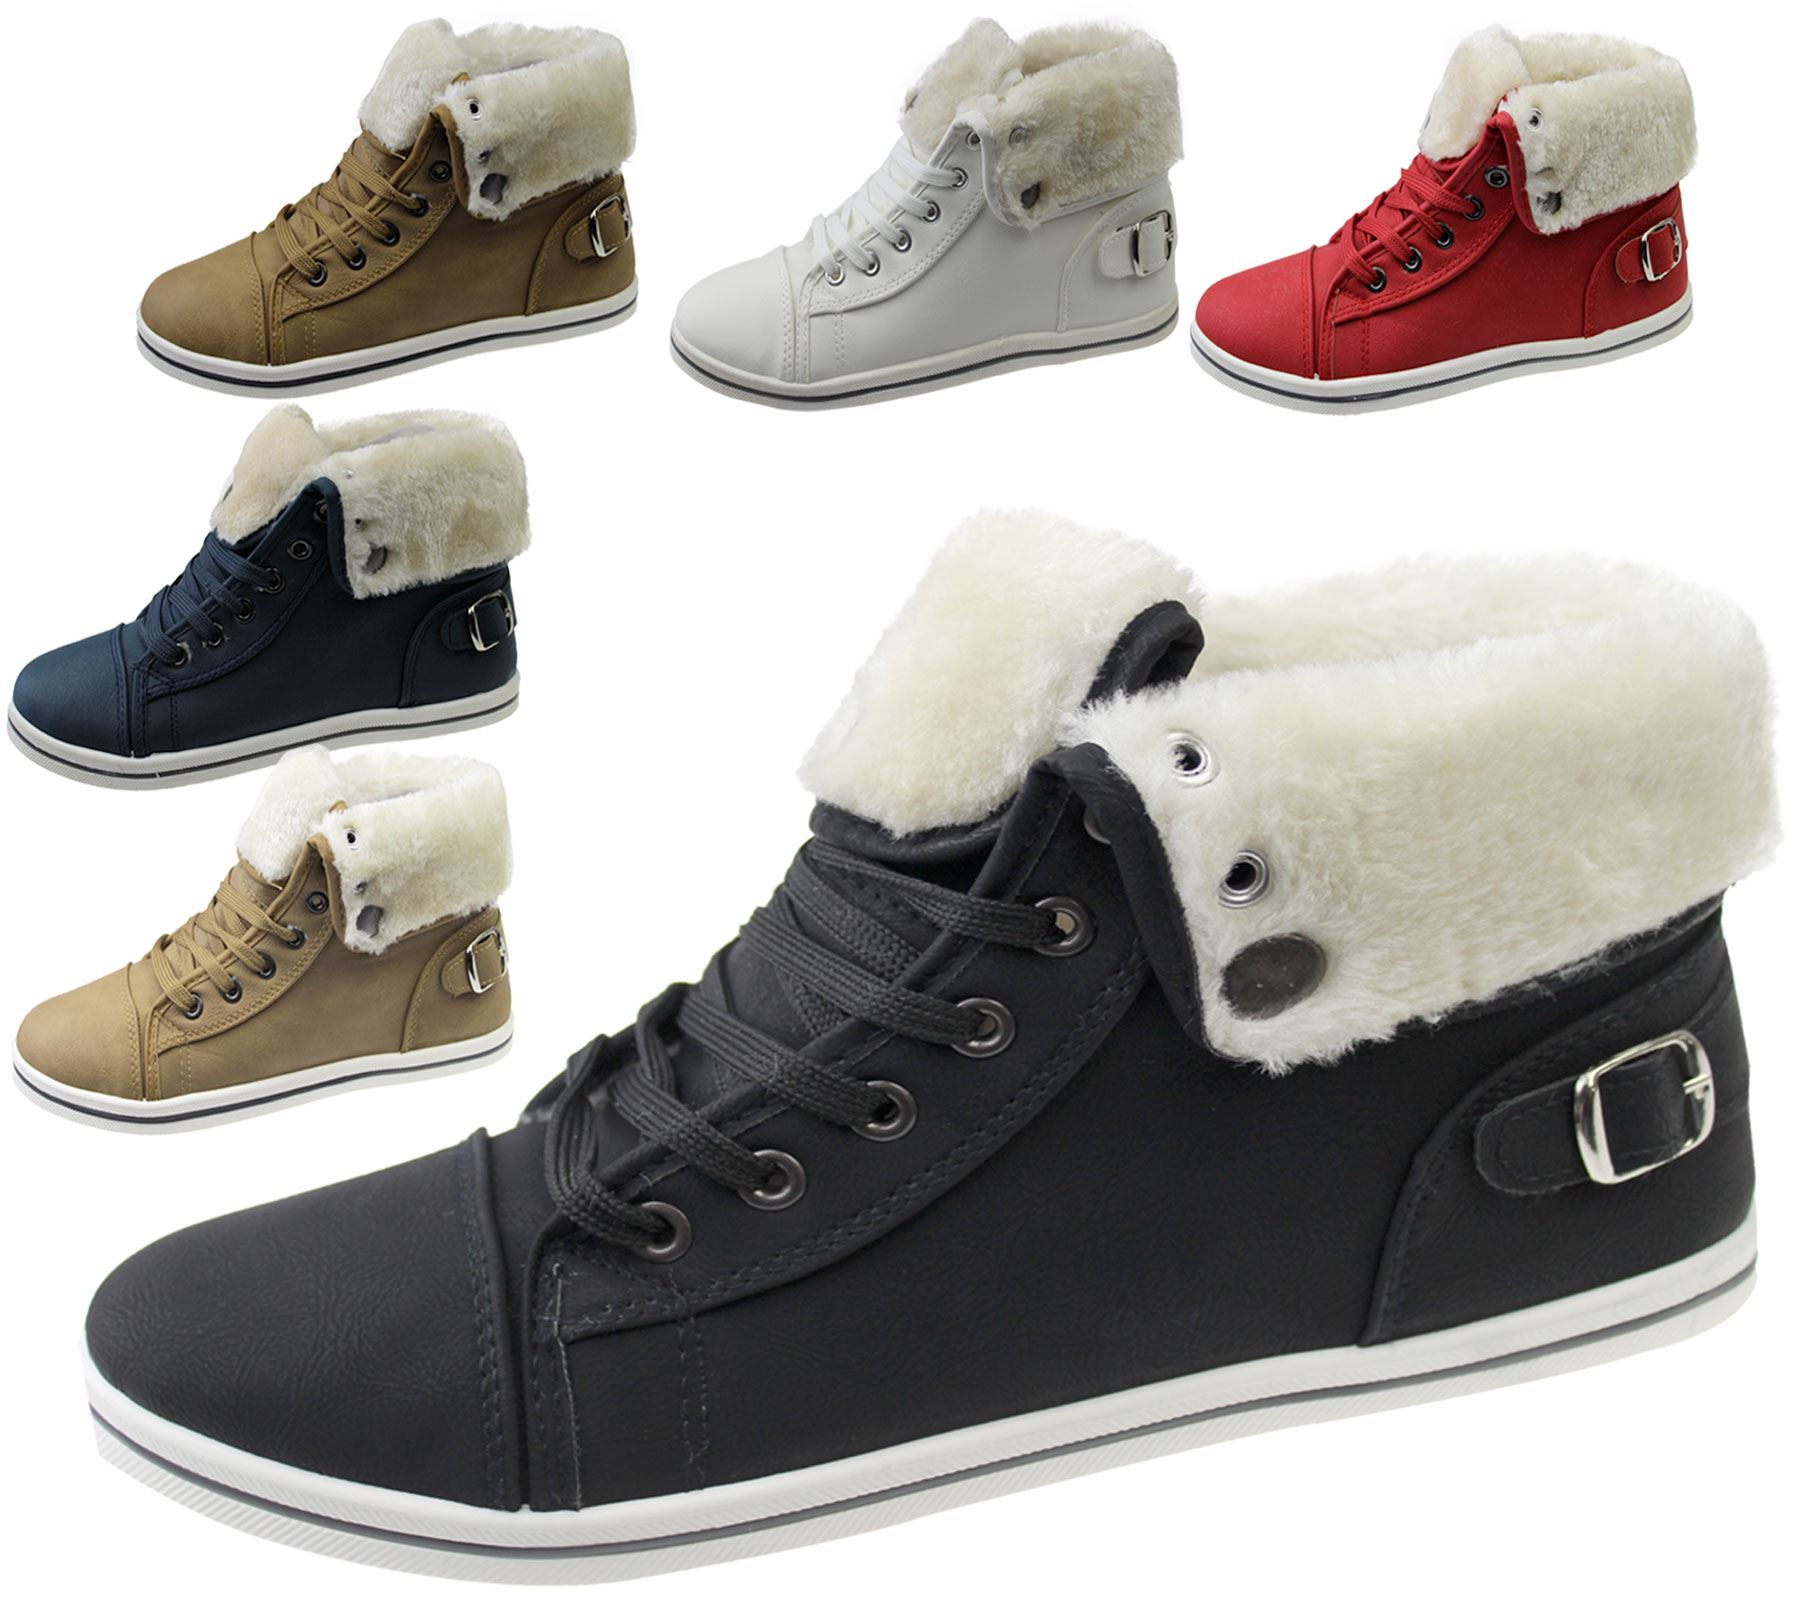 Girls-Boots-Womens-Warm-Lined-High-Top-Ankle-Trainer-Ladies-Winter-Shoes-Size miniatura 67